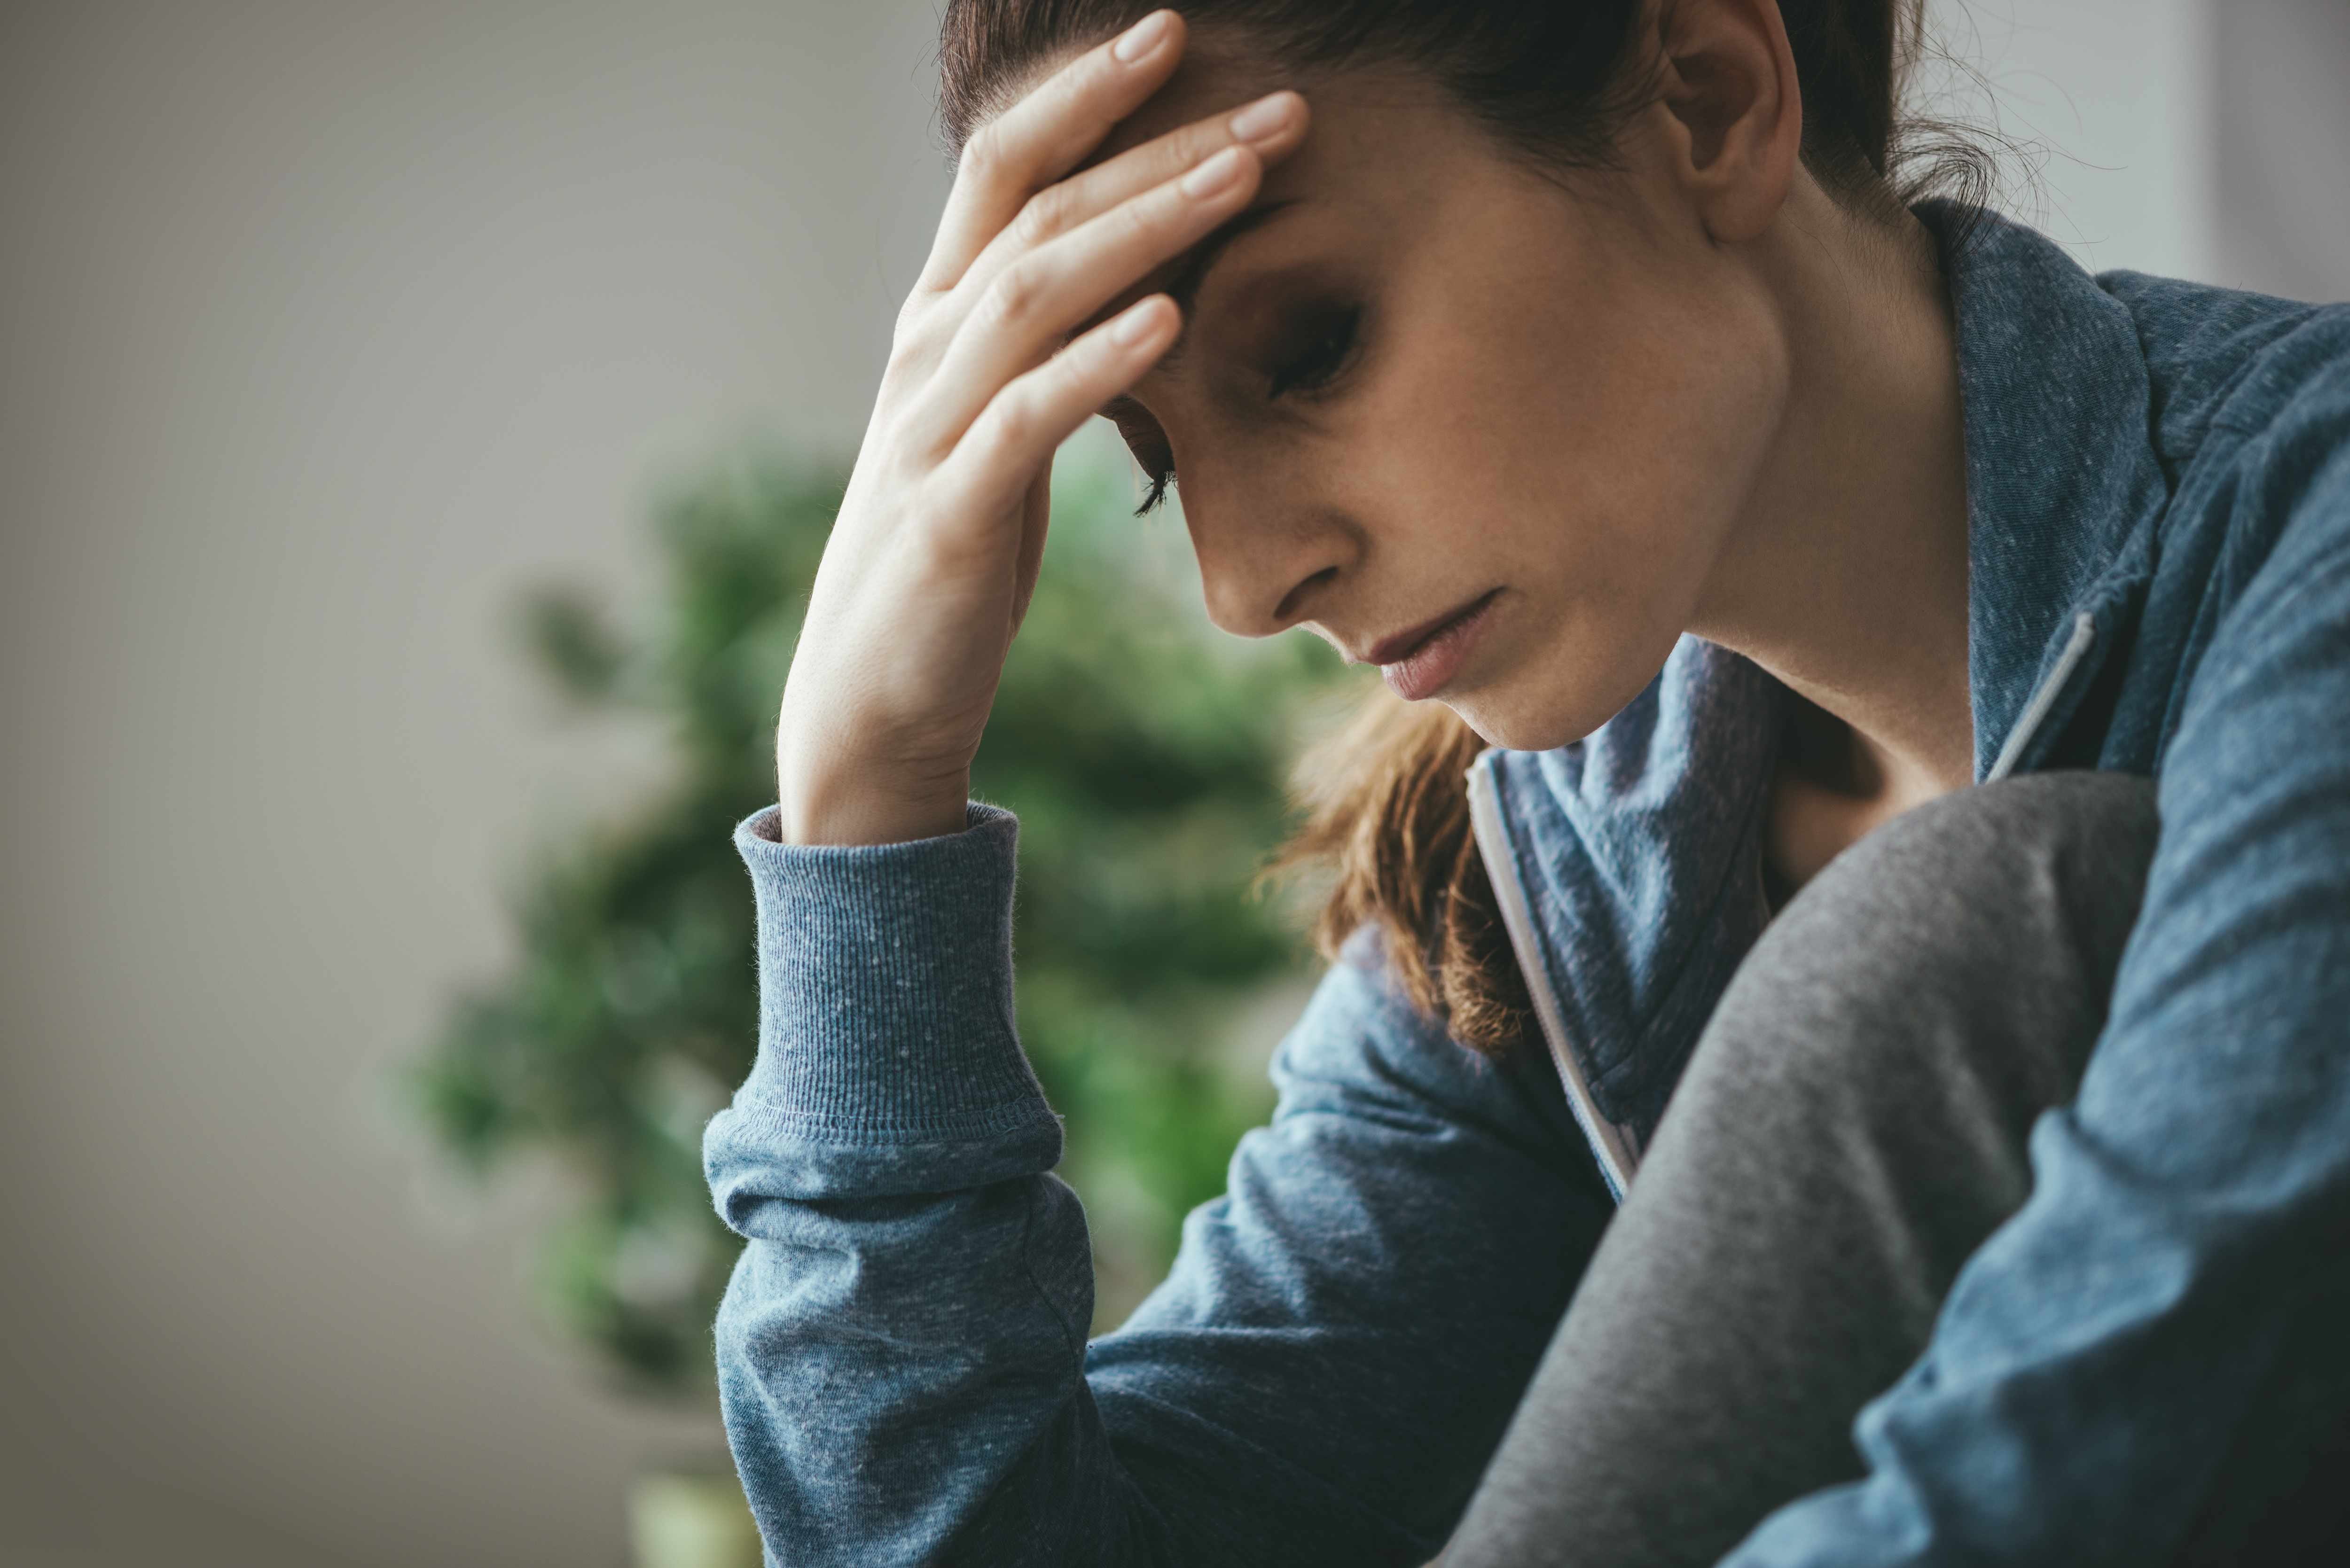 a woman resting her head in her hand looking sad and depressed, thinking negative thoughts